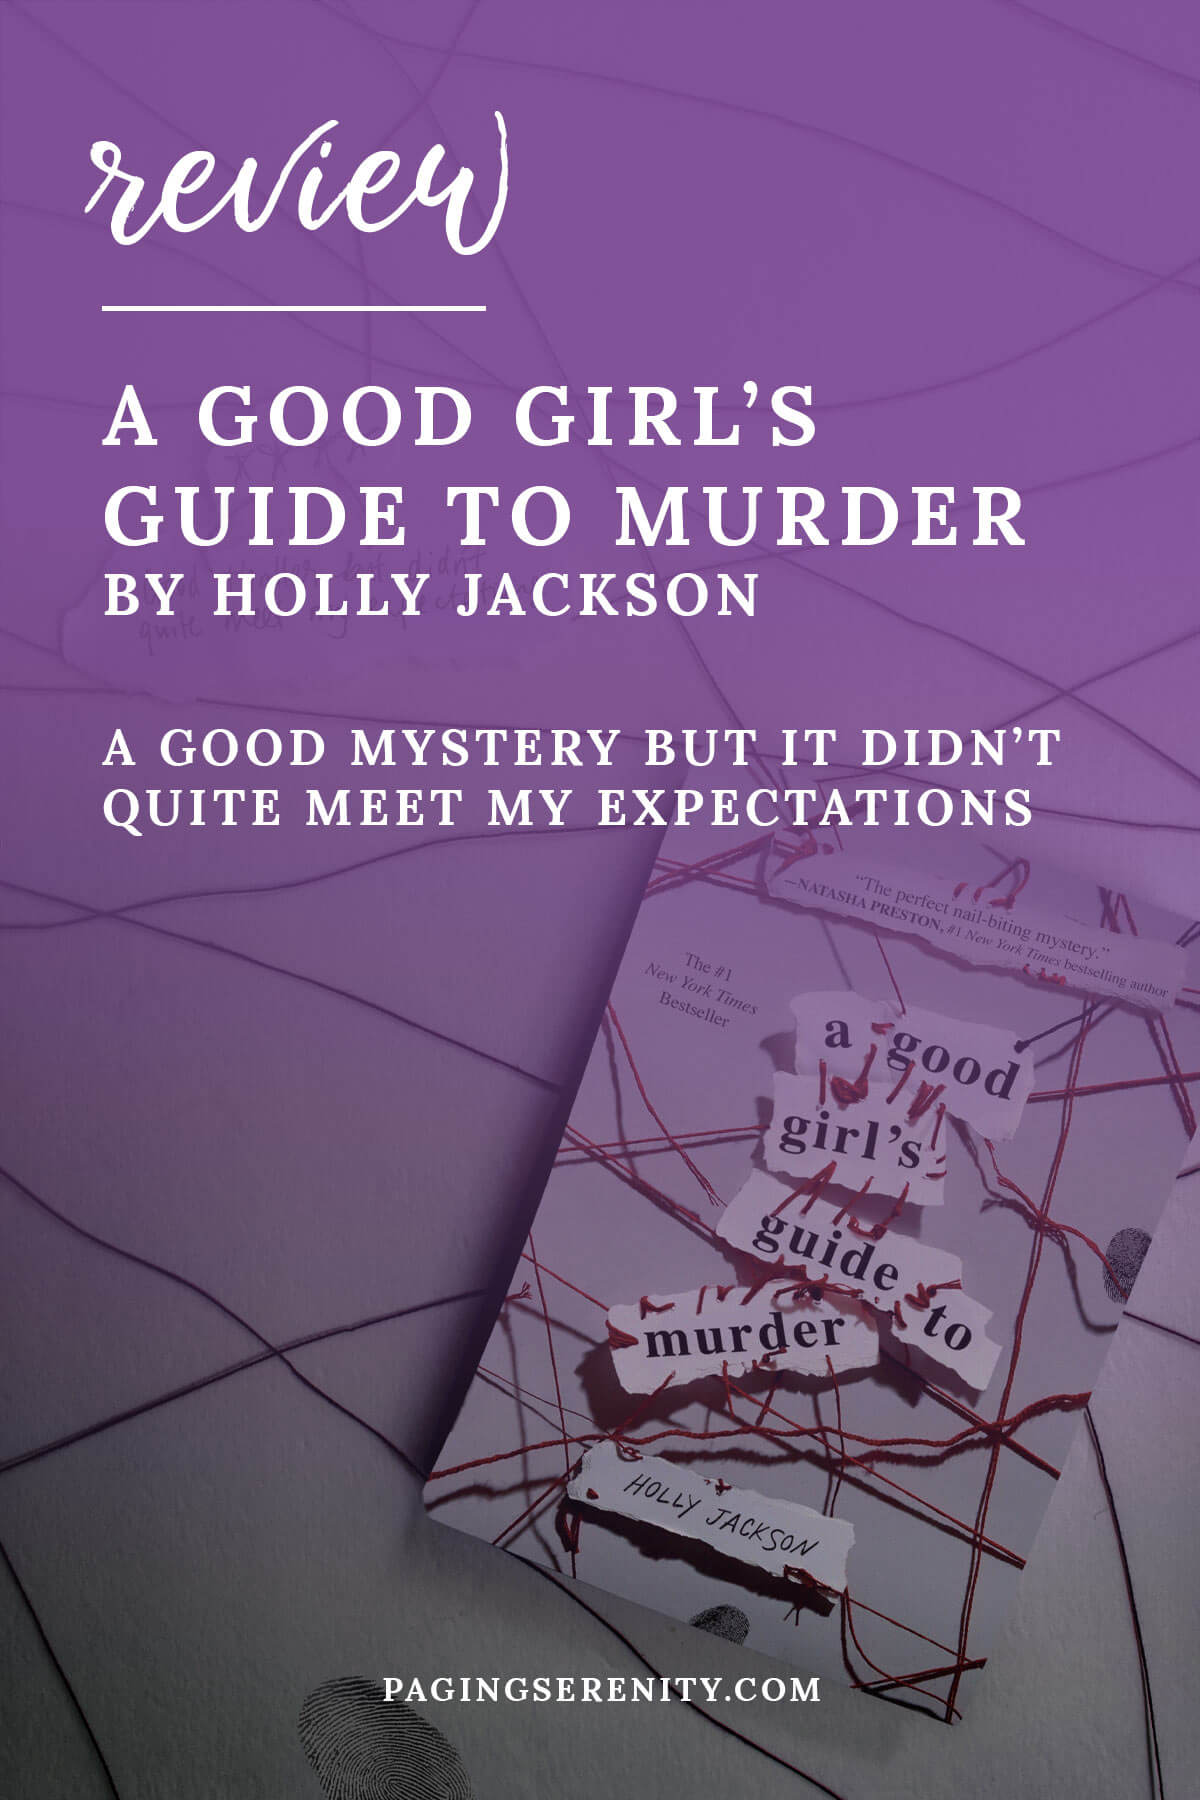 A Good Girl's Guide to Murder by Holly Jackson is a good mystery but it didn't quite meet my expectations.